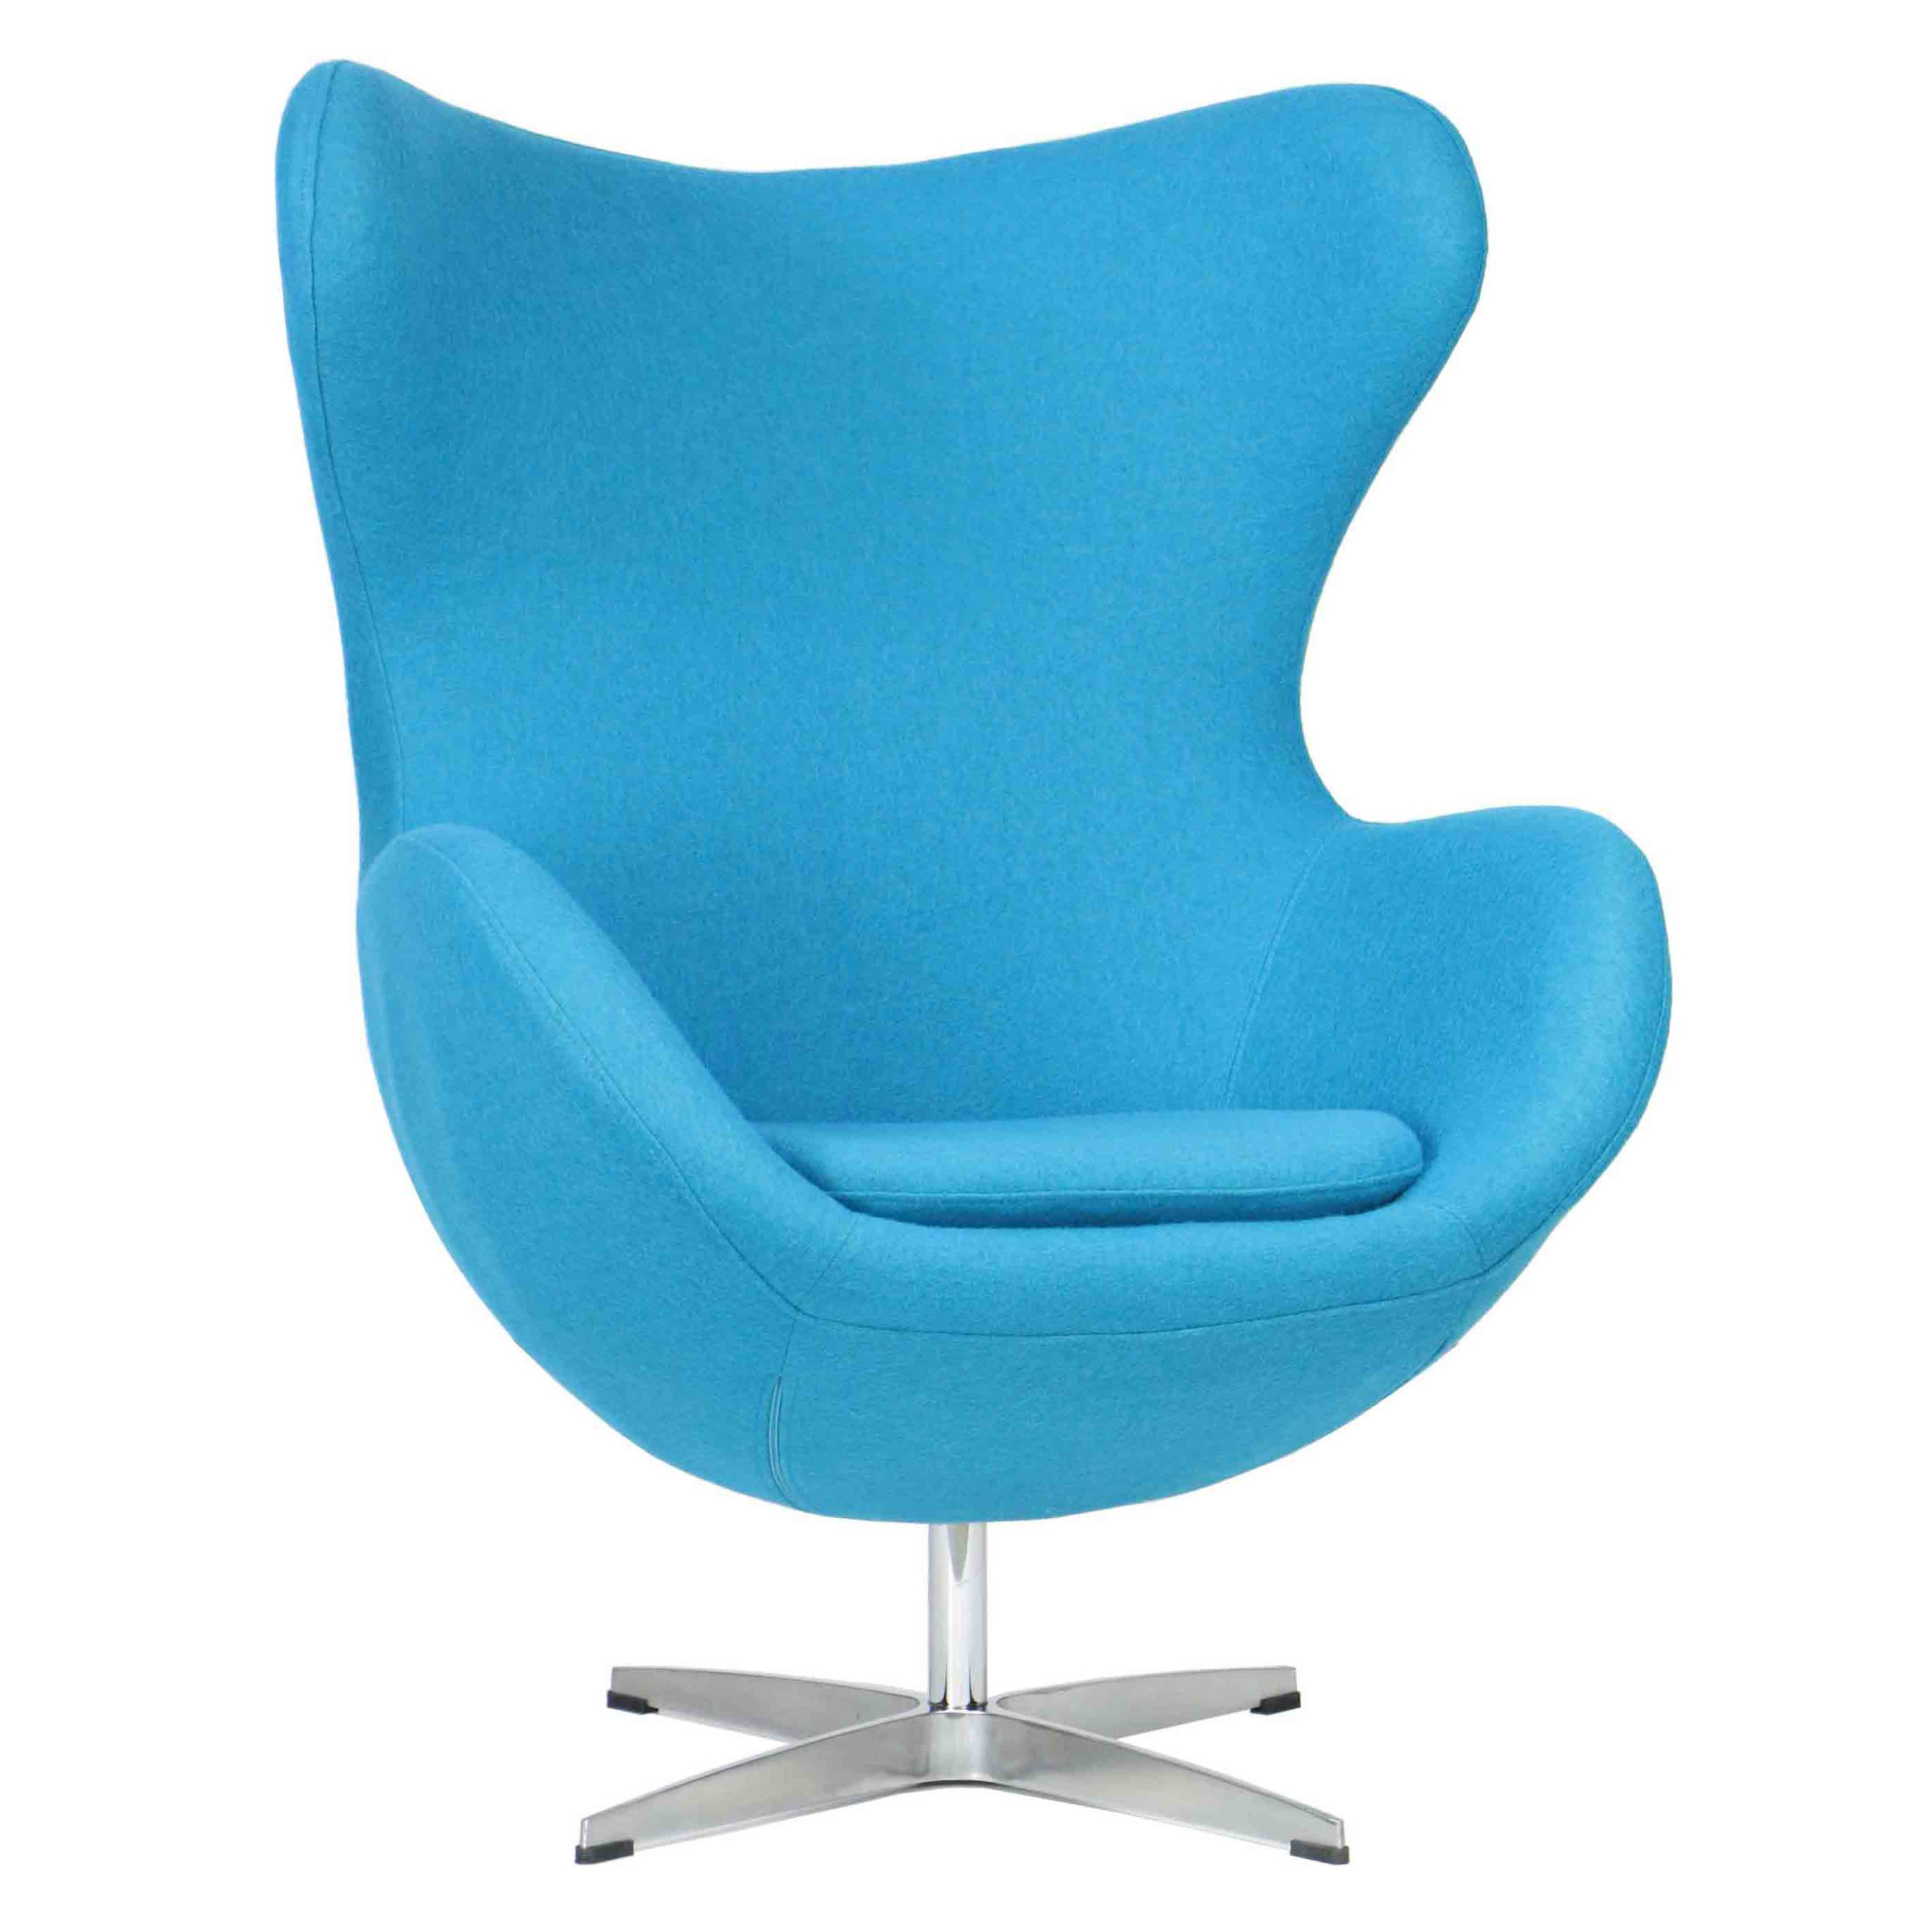 Designer Replica Egg Chair in Blue  sc 1 st  FortyTwo & Designer Replica Egg Chair in Blue | Furniture u0026 Home Décor | FortyTwo